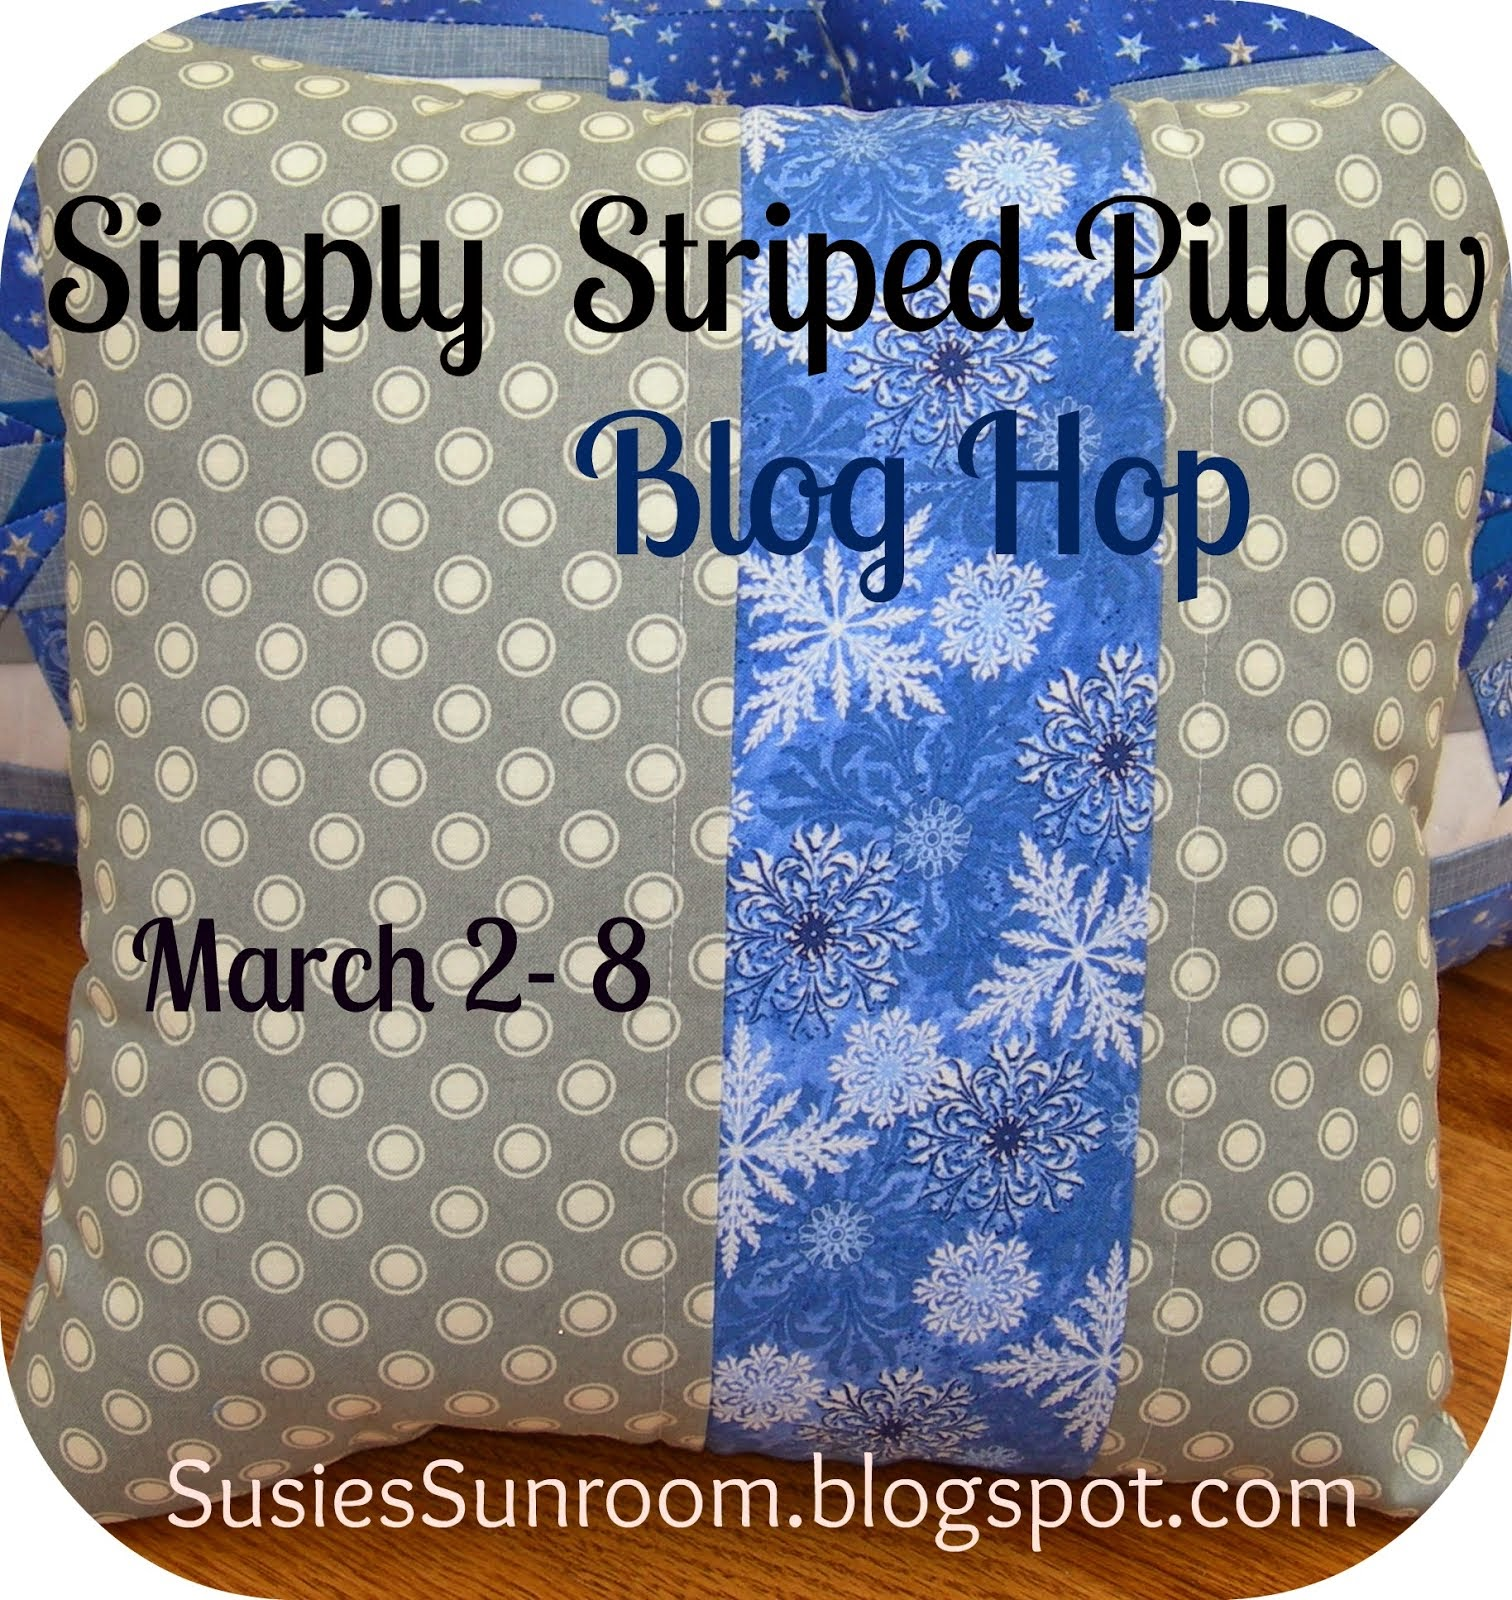 Simply Striped Pillow Blog Hop!